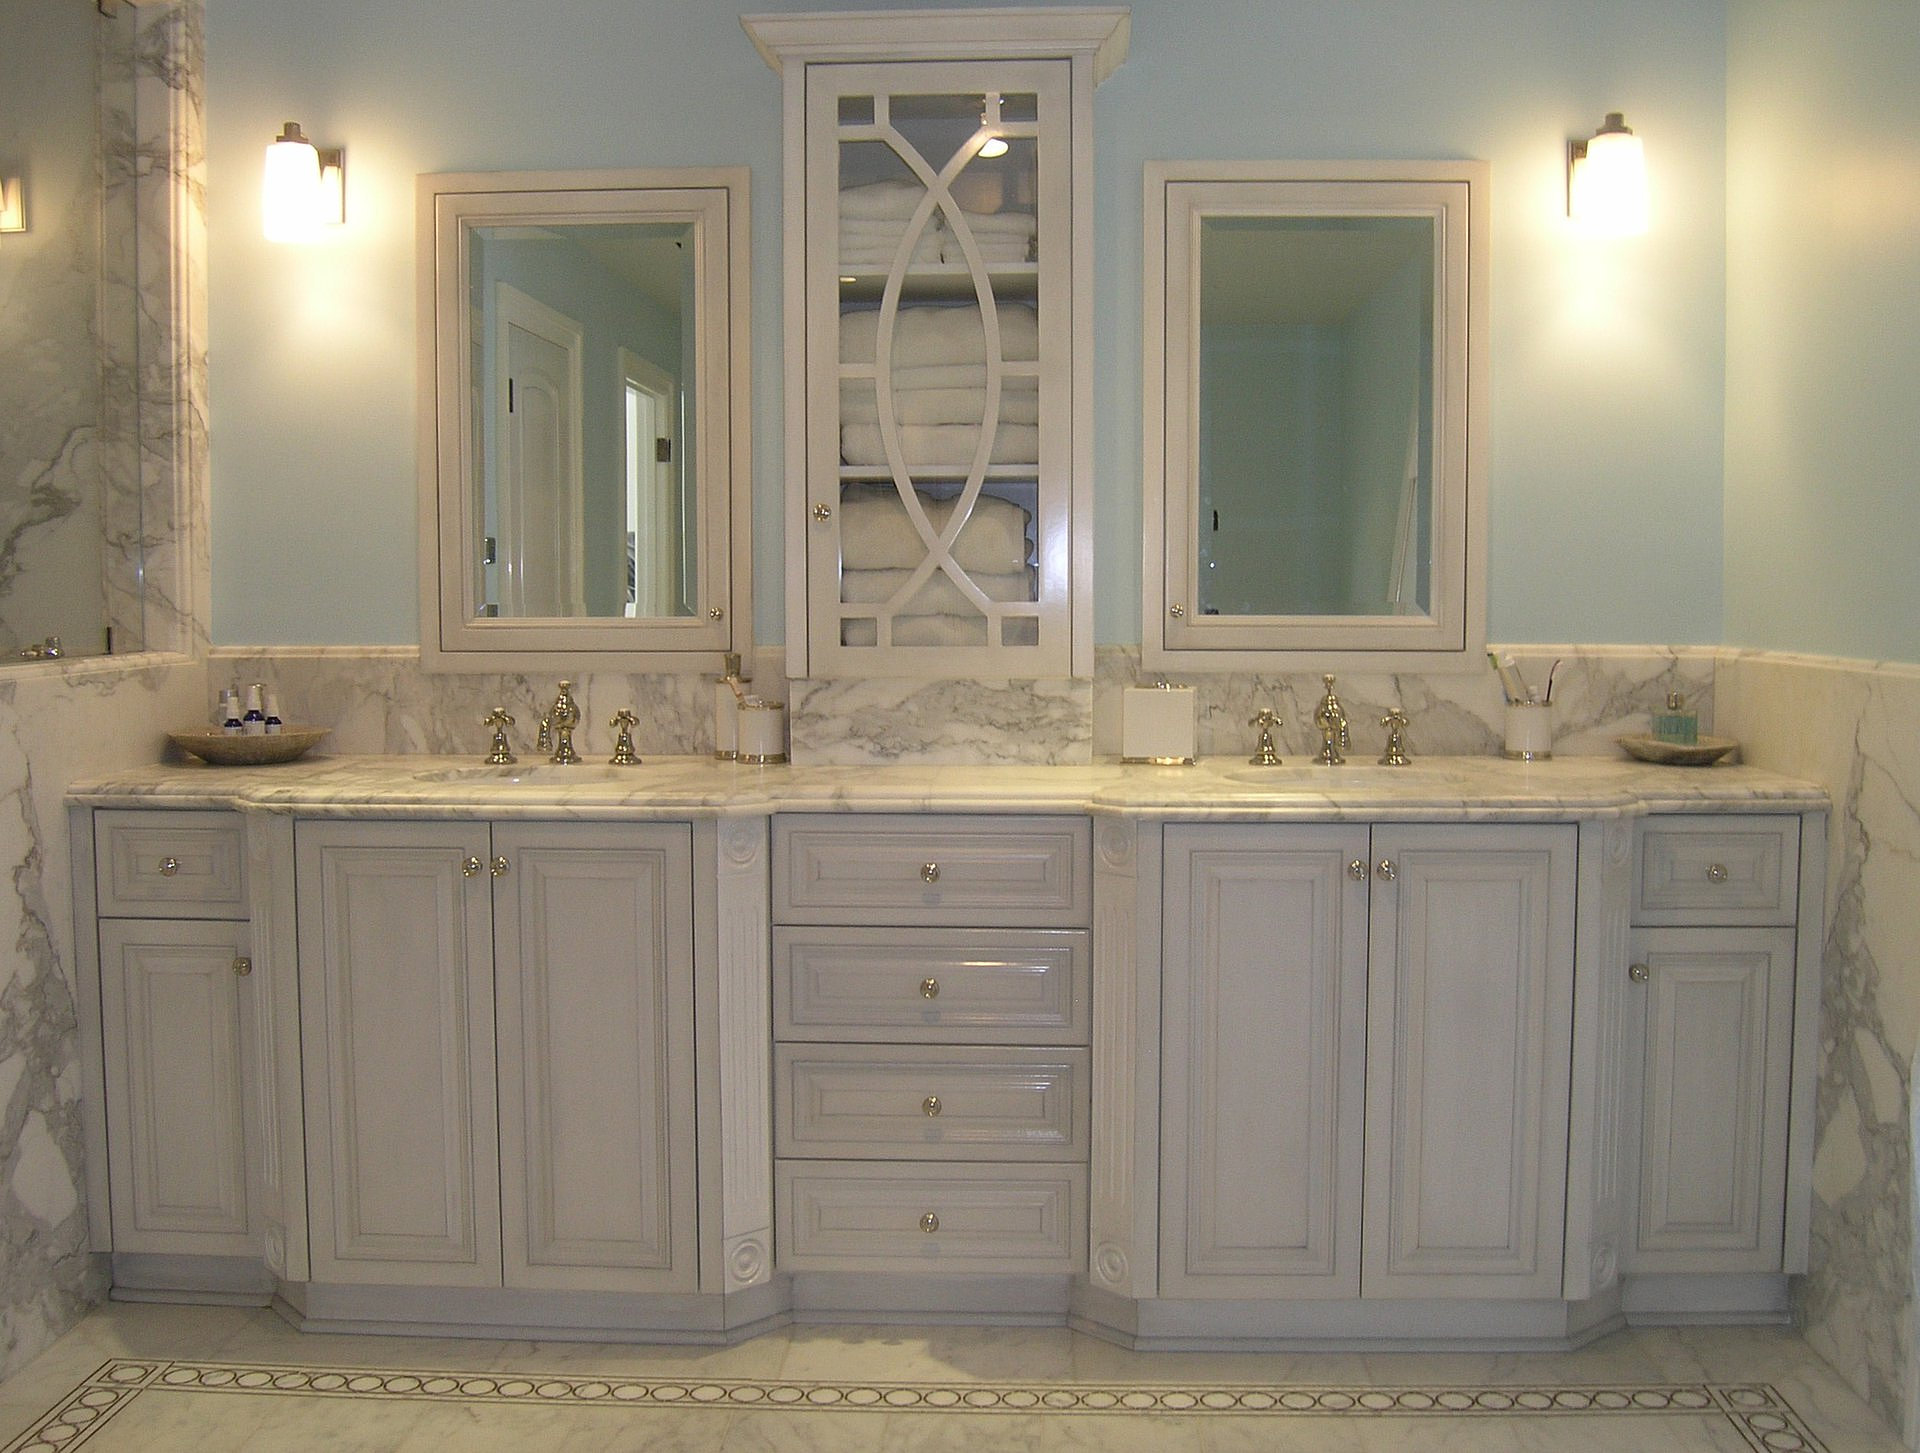 Kitchen and Bathroom Remodeling Contractor   Encino CA. Kitchen and Bathroom Remodeling Contractor   Encino CA